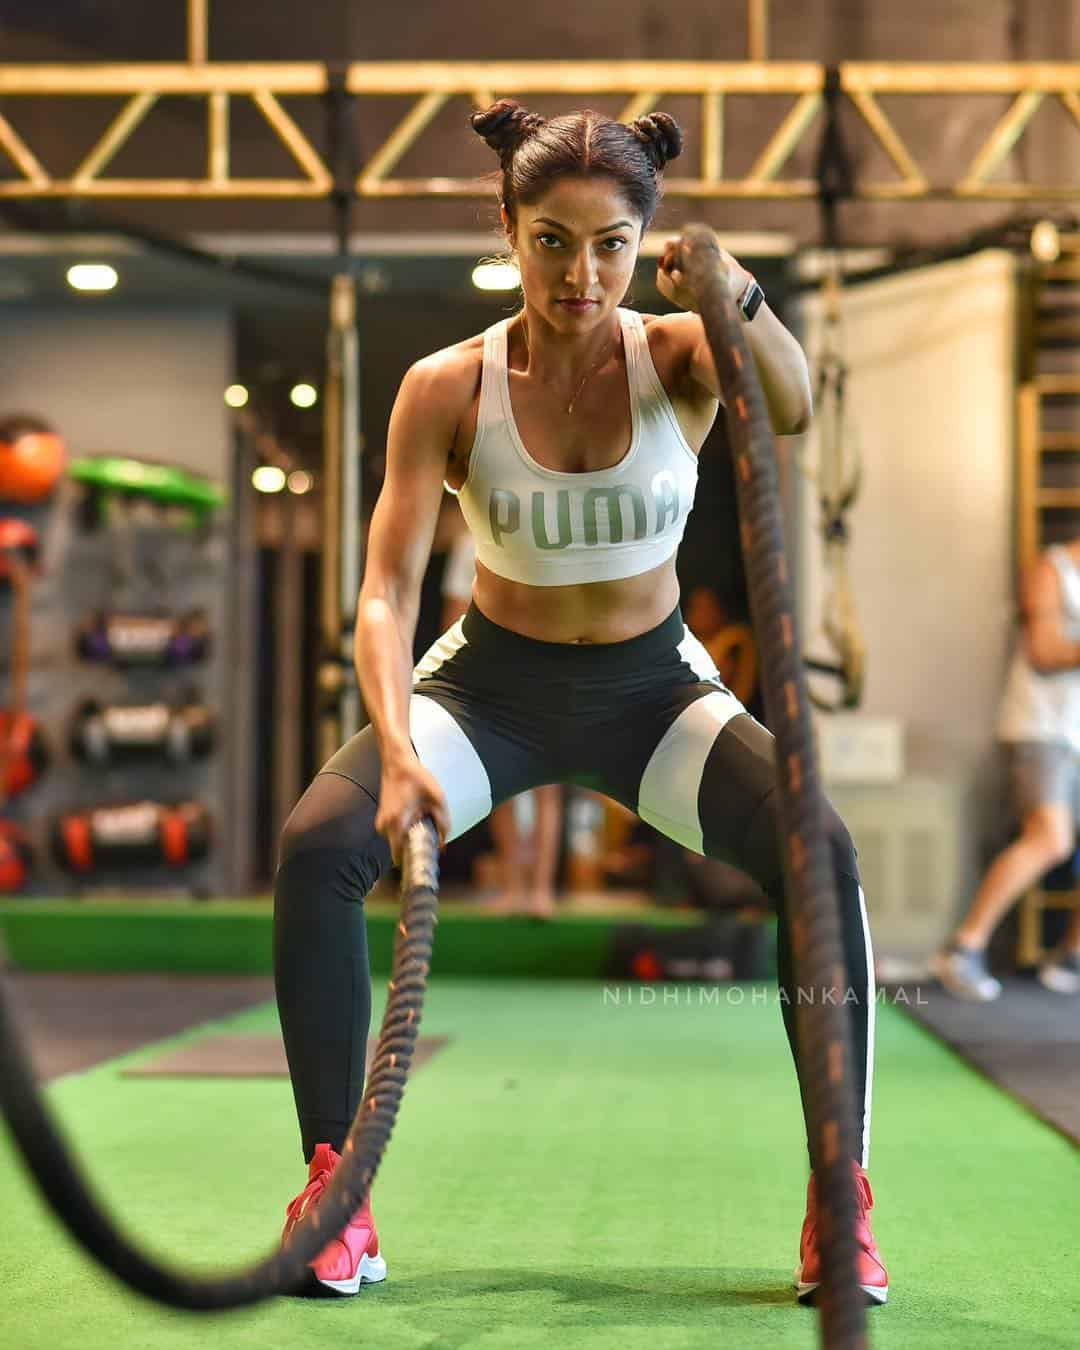 Nidhi Mohan Kamal in the gym